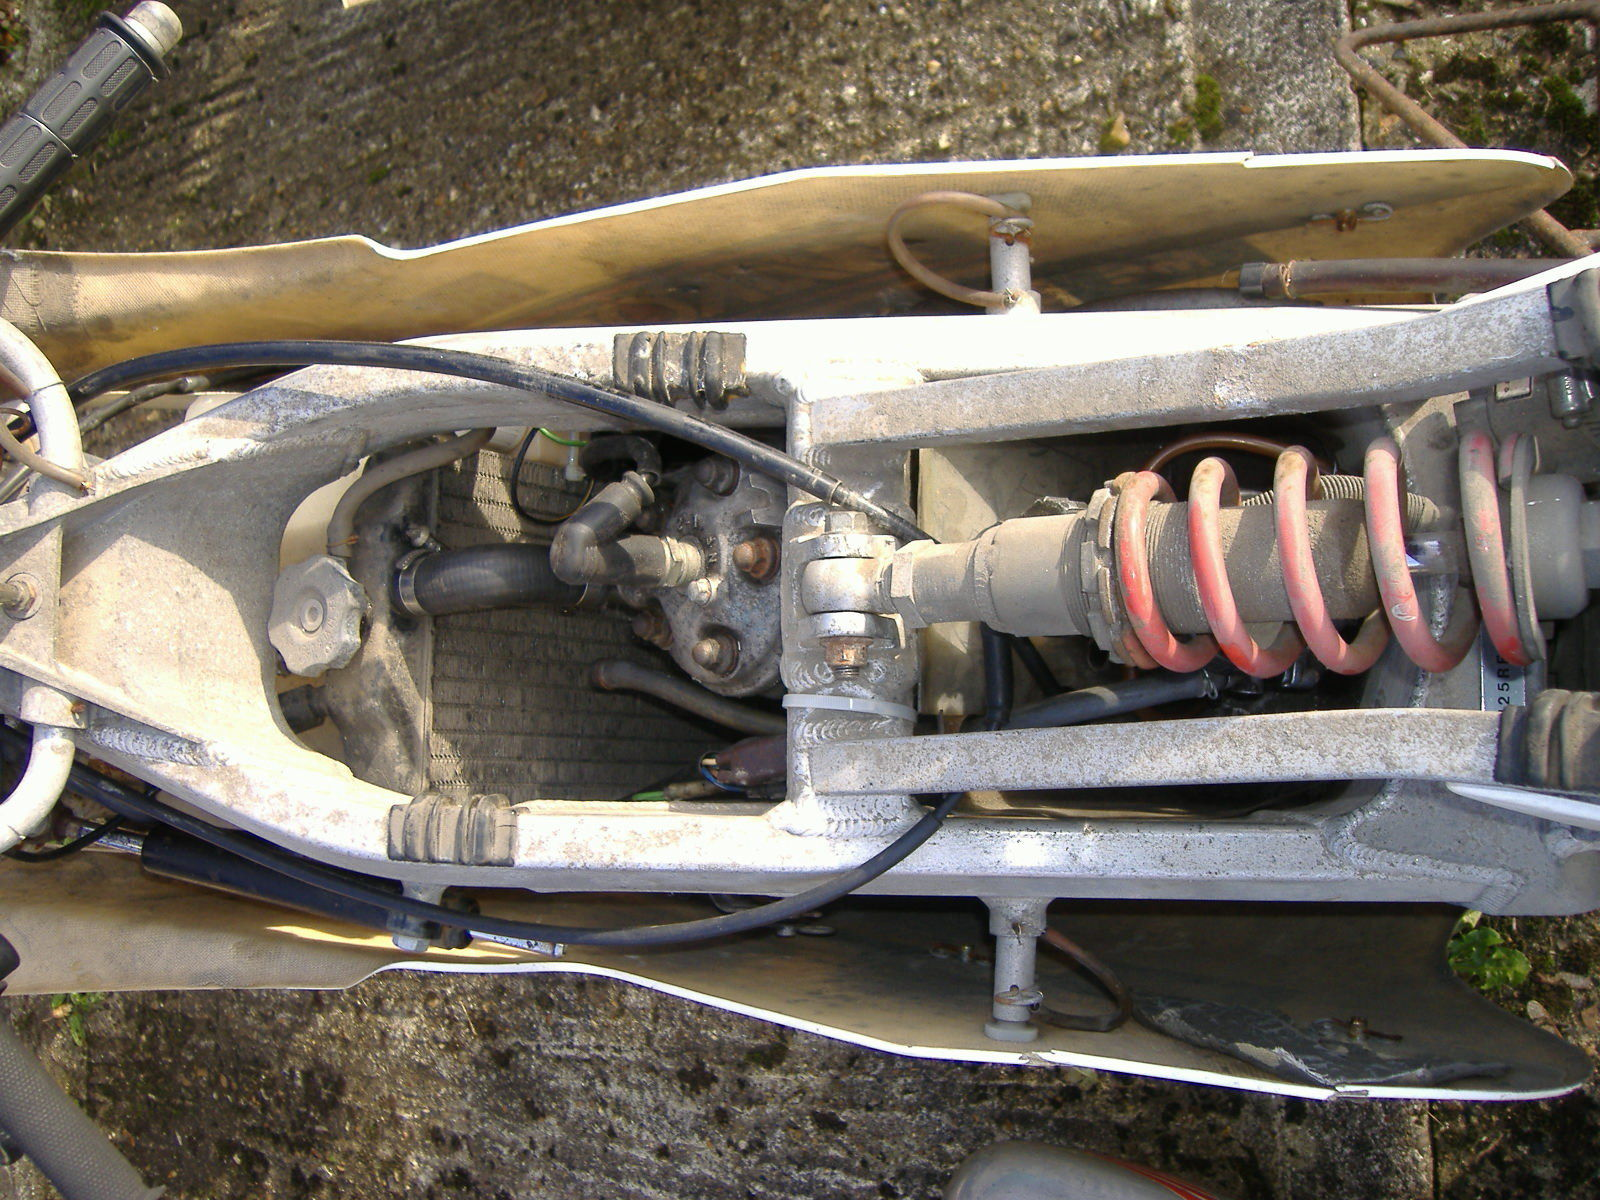 Honda Rs125 Hrc Project With Spare Parts